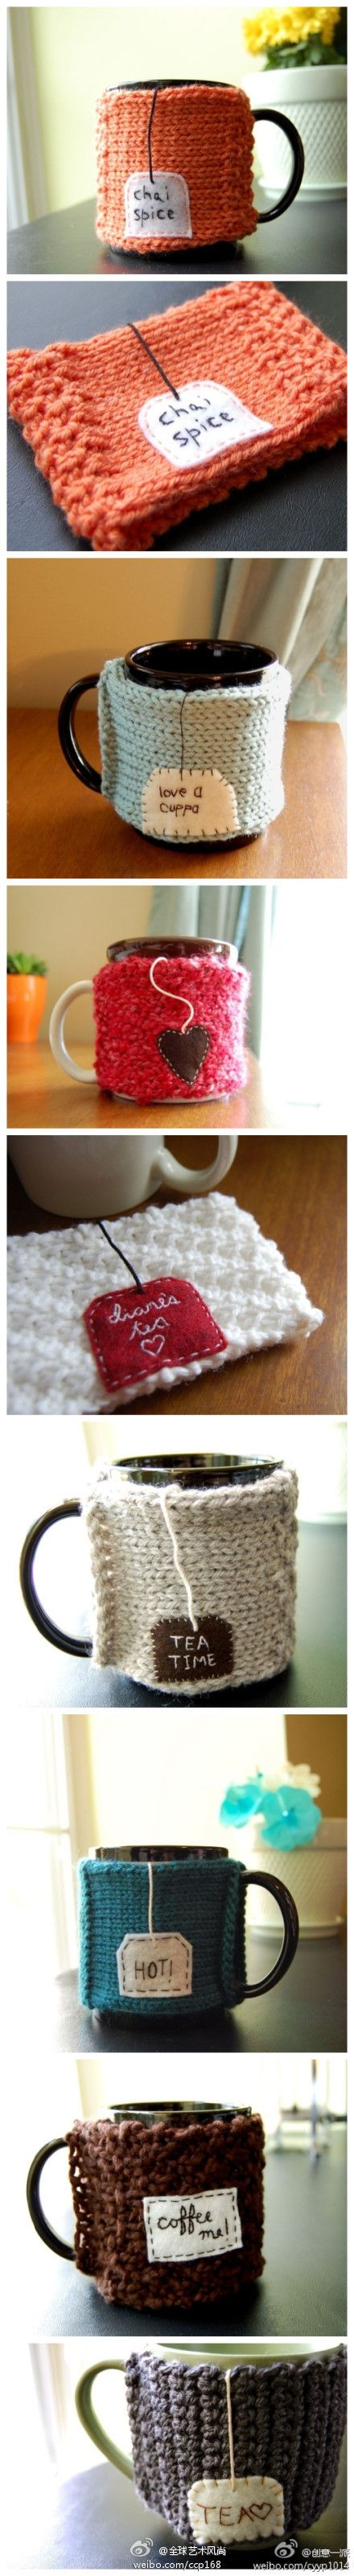 Mug warmers @Lila Smyth we need to do this!